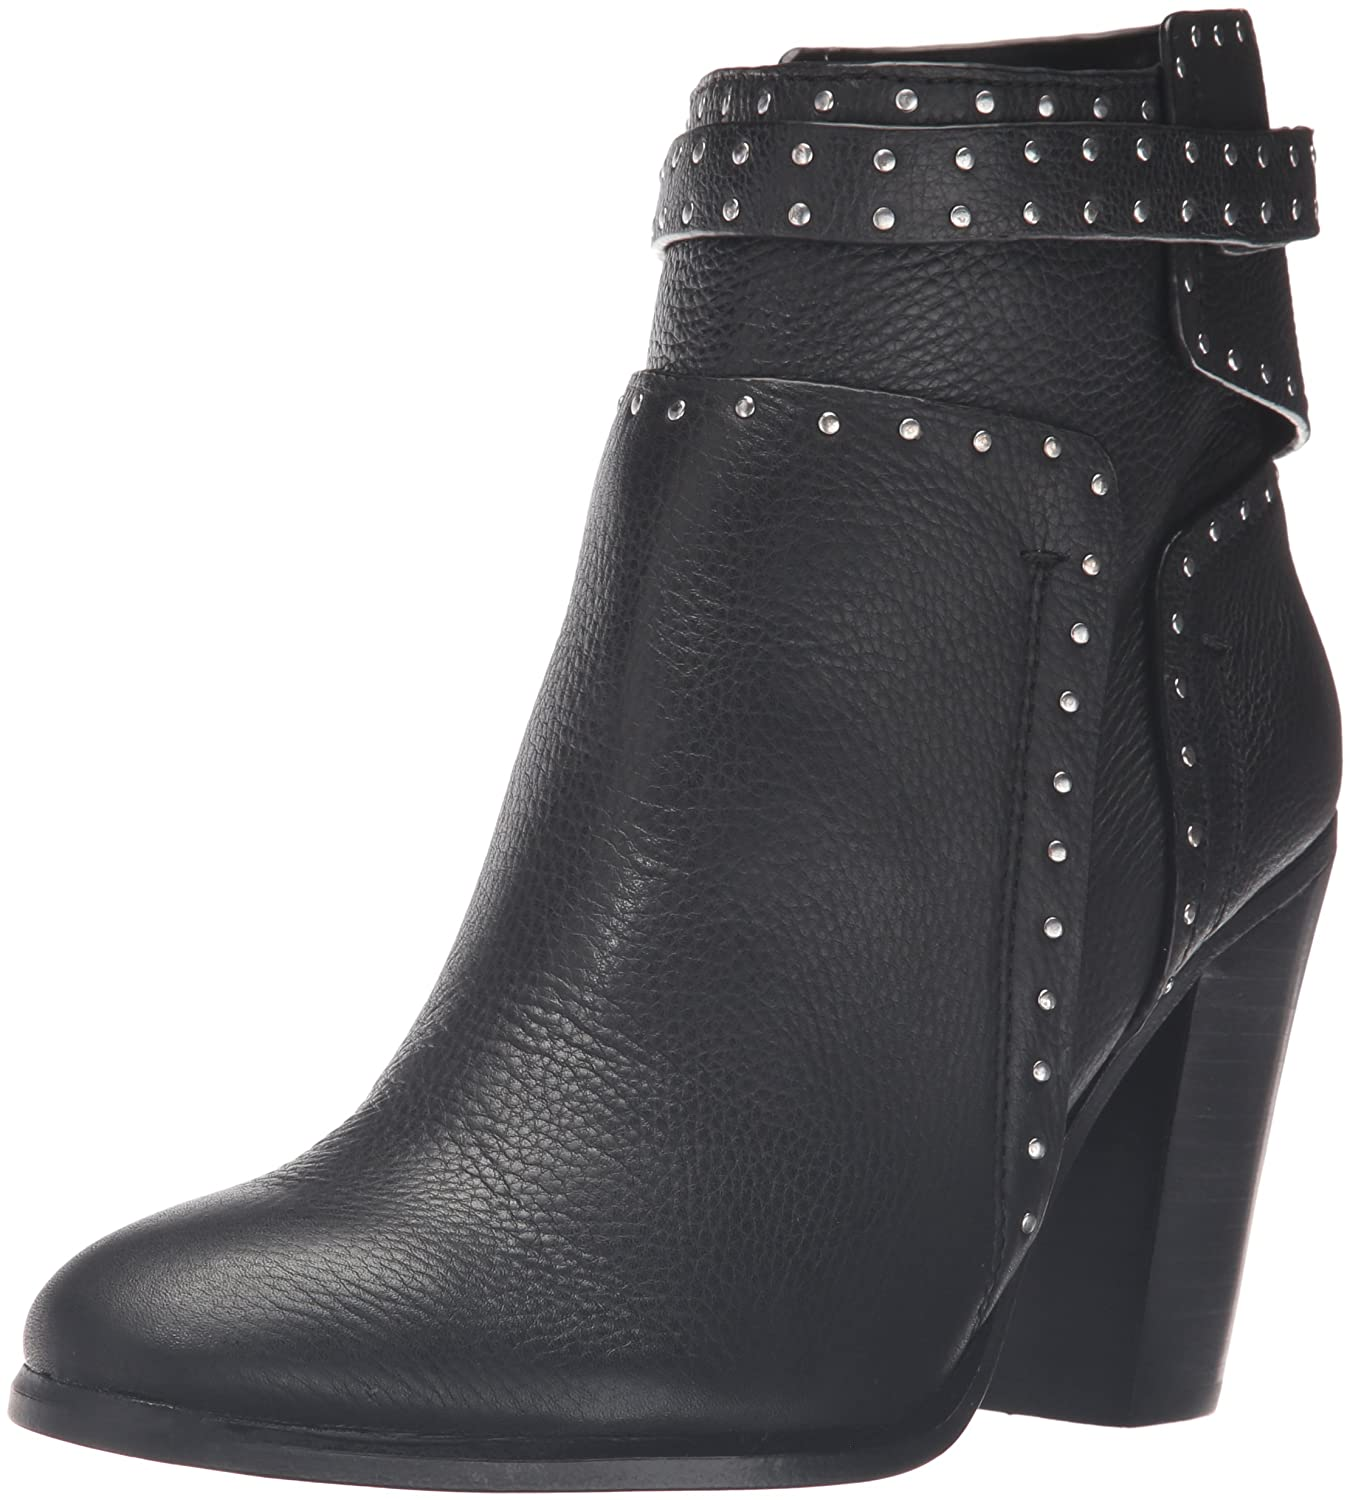 Vince Camuto Women's Faythes Ankle Bootie B01FYWJA40 6 B(M) US|Black